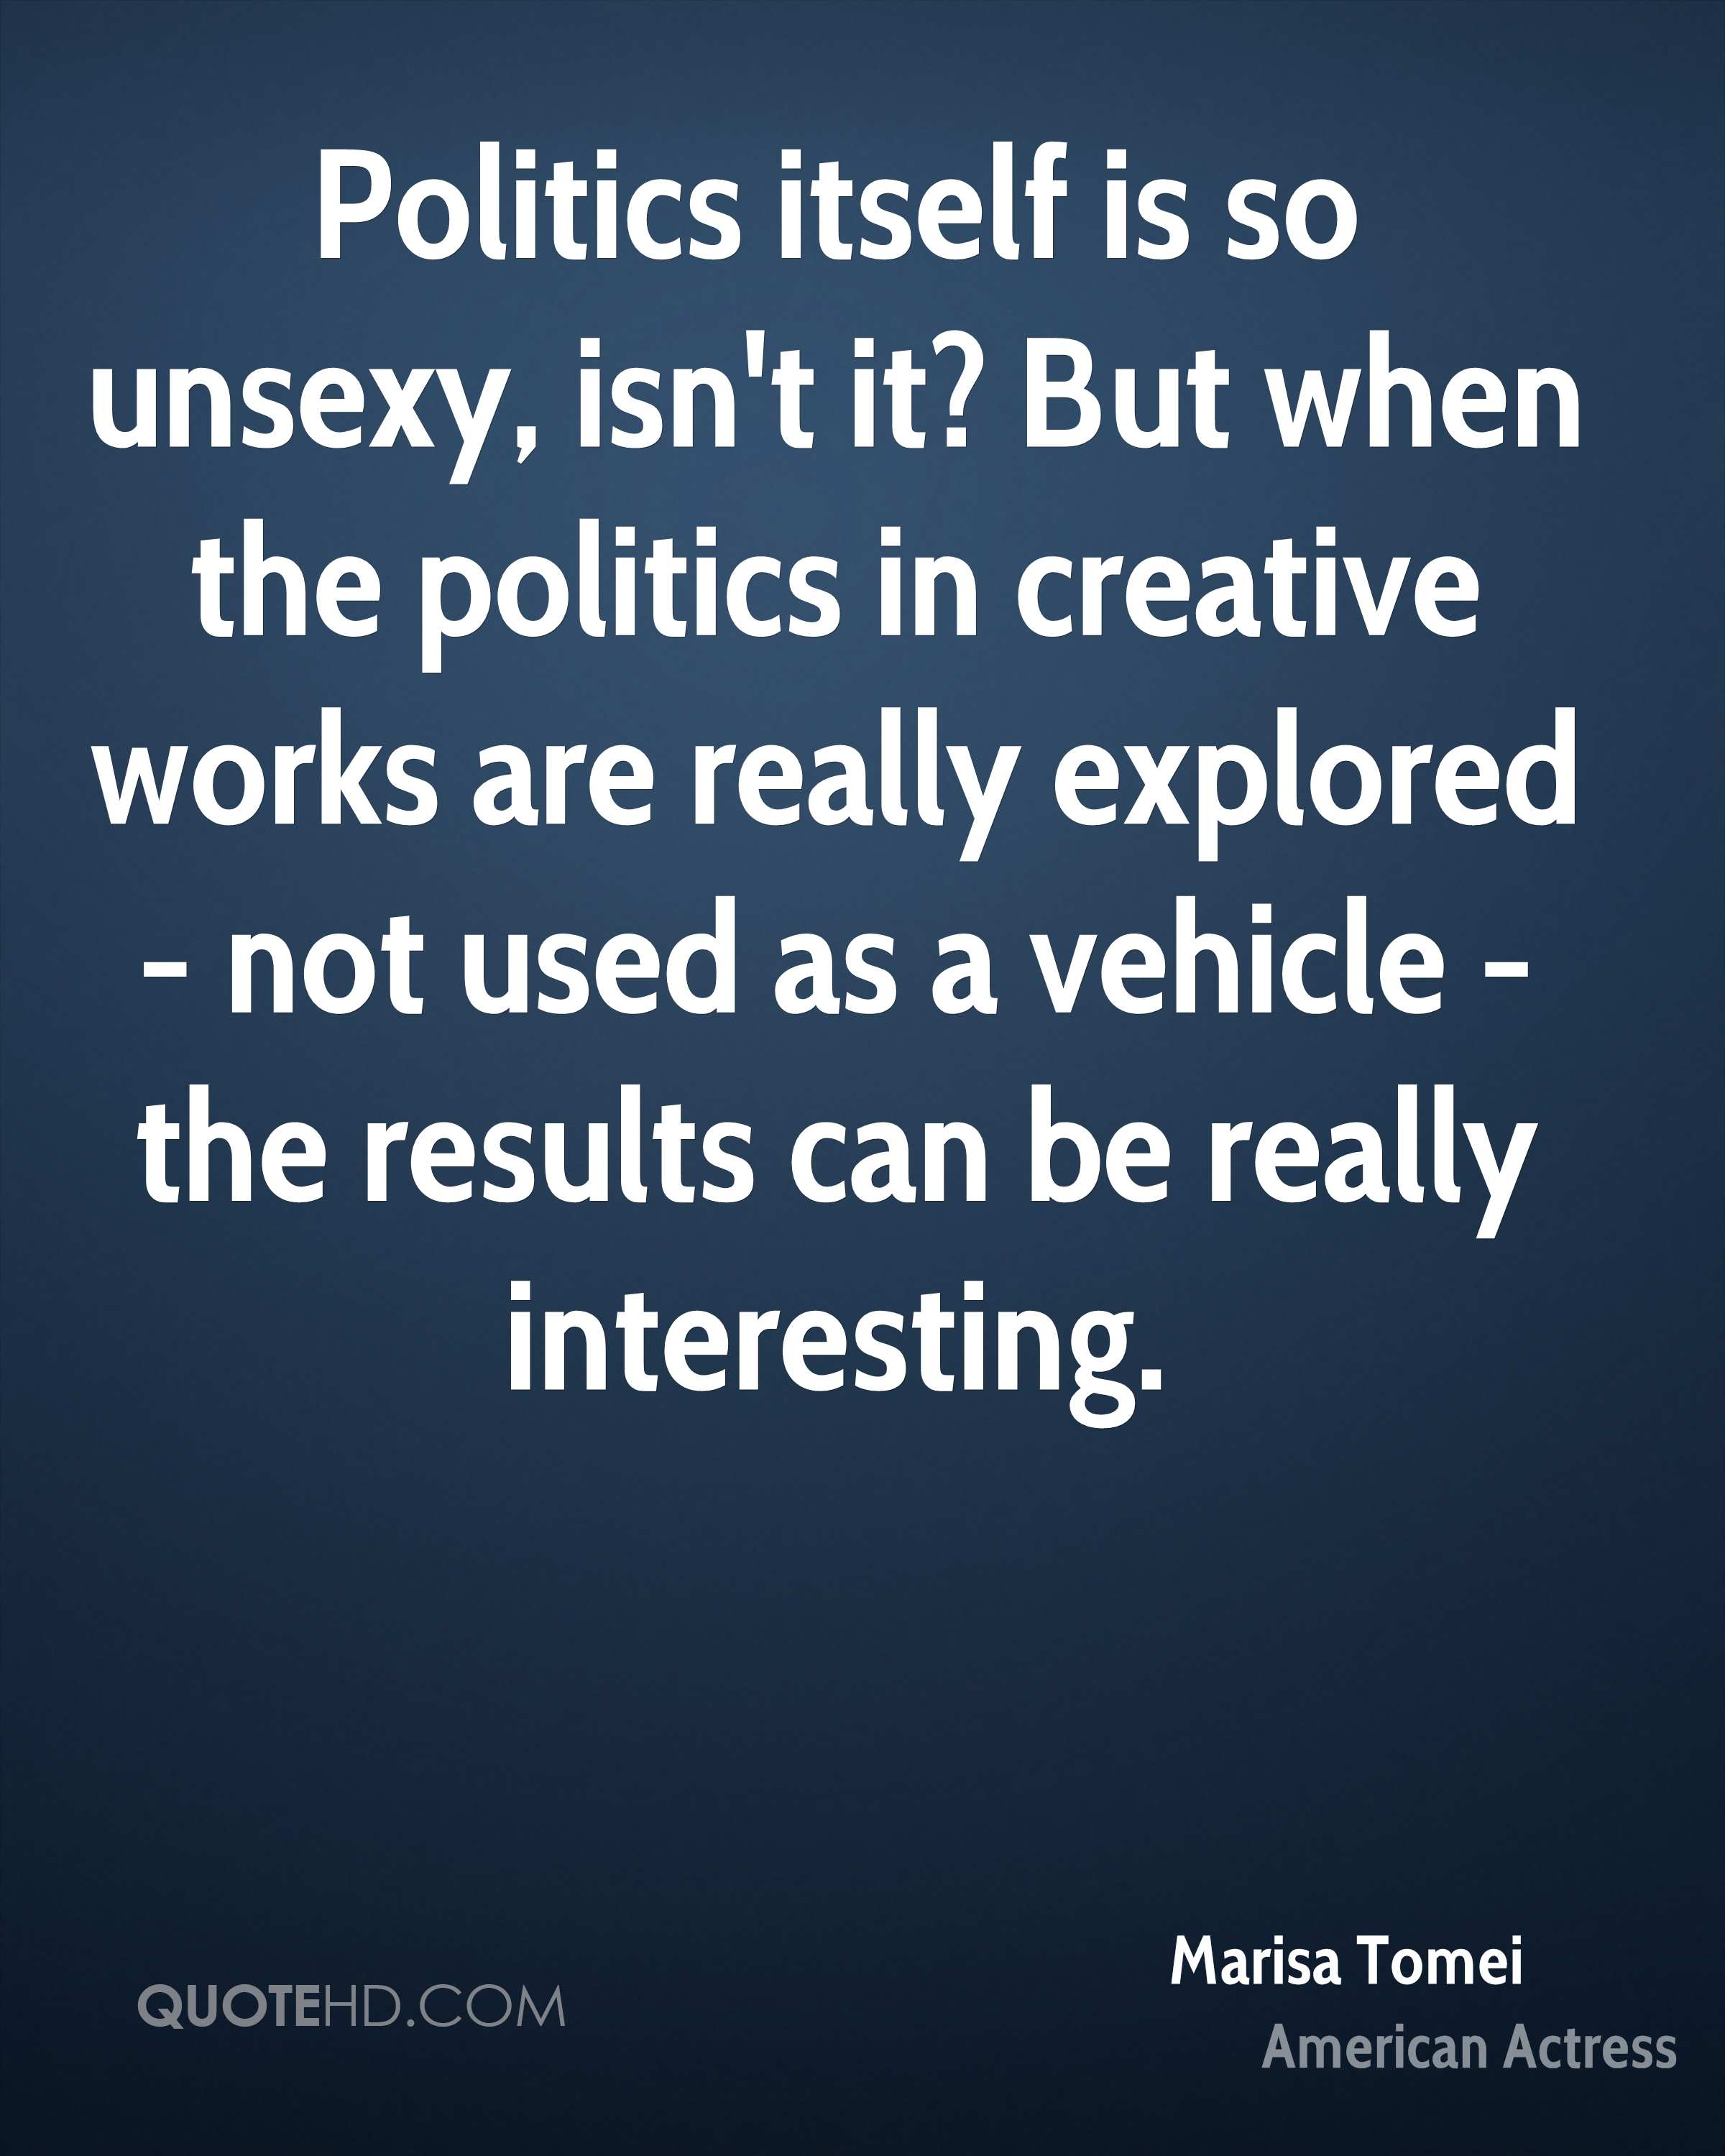 Politics itself is so unsexy, isn't it? But when the politics in creative works are really explored - not used as a vehicle - the results can be really interesting.